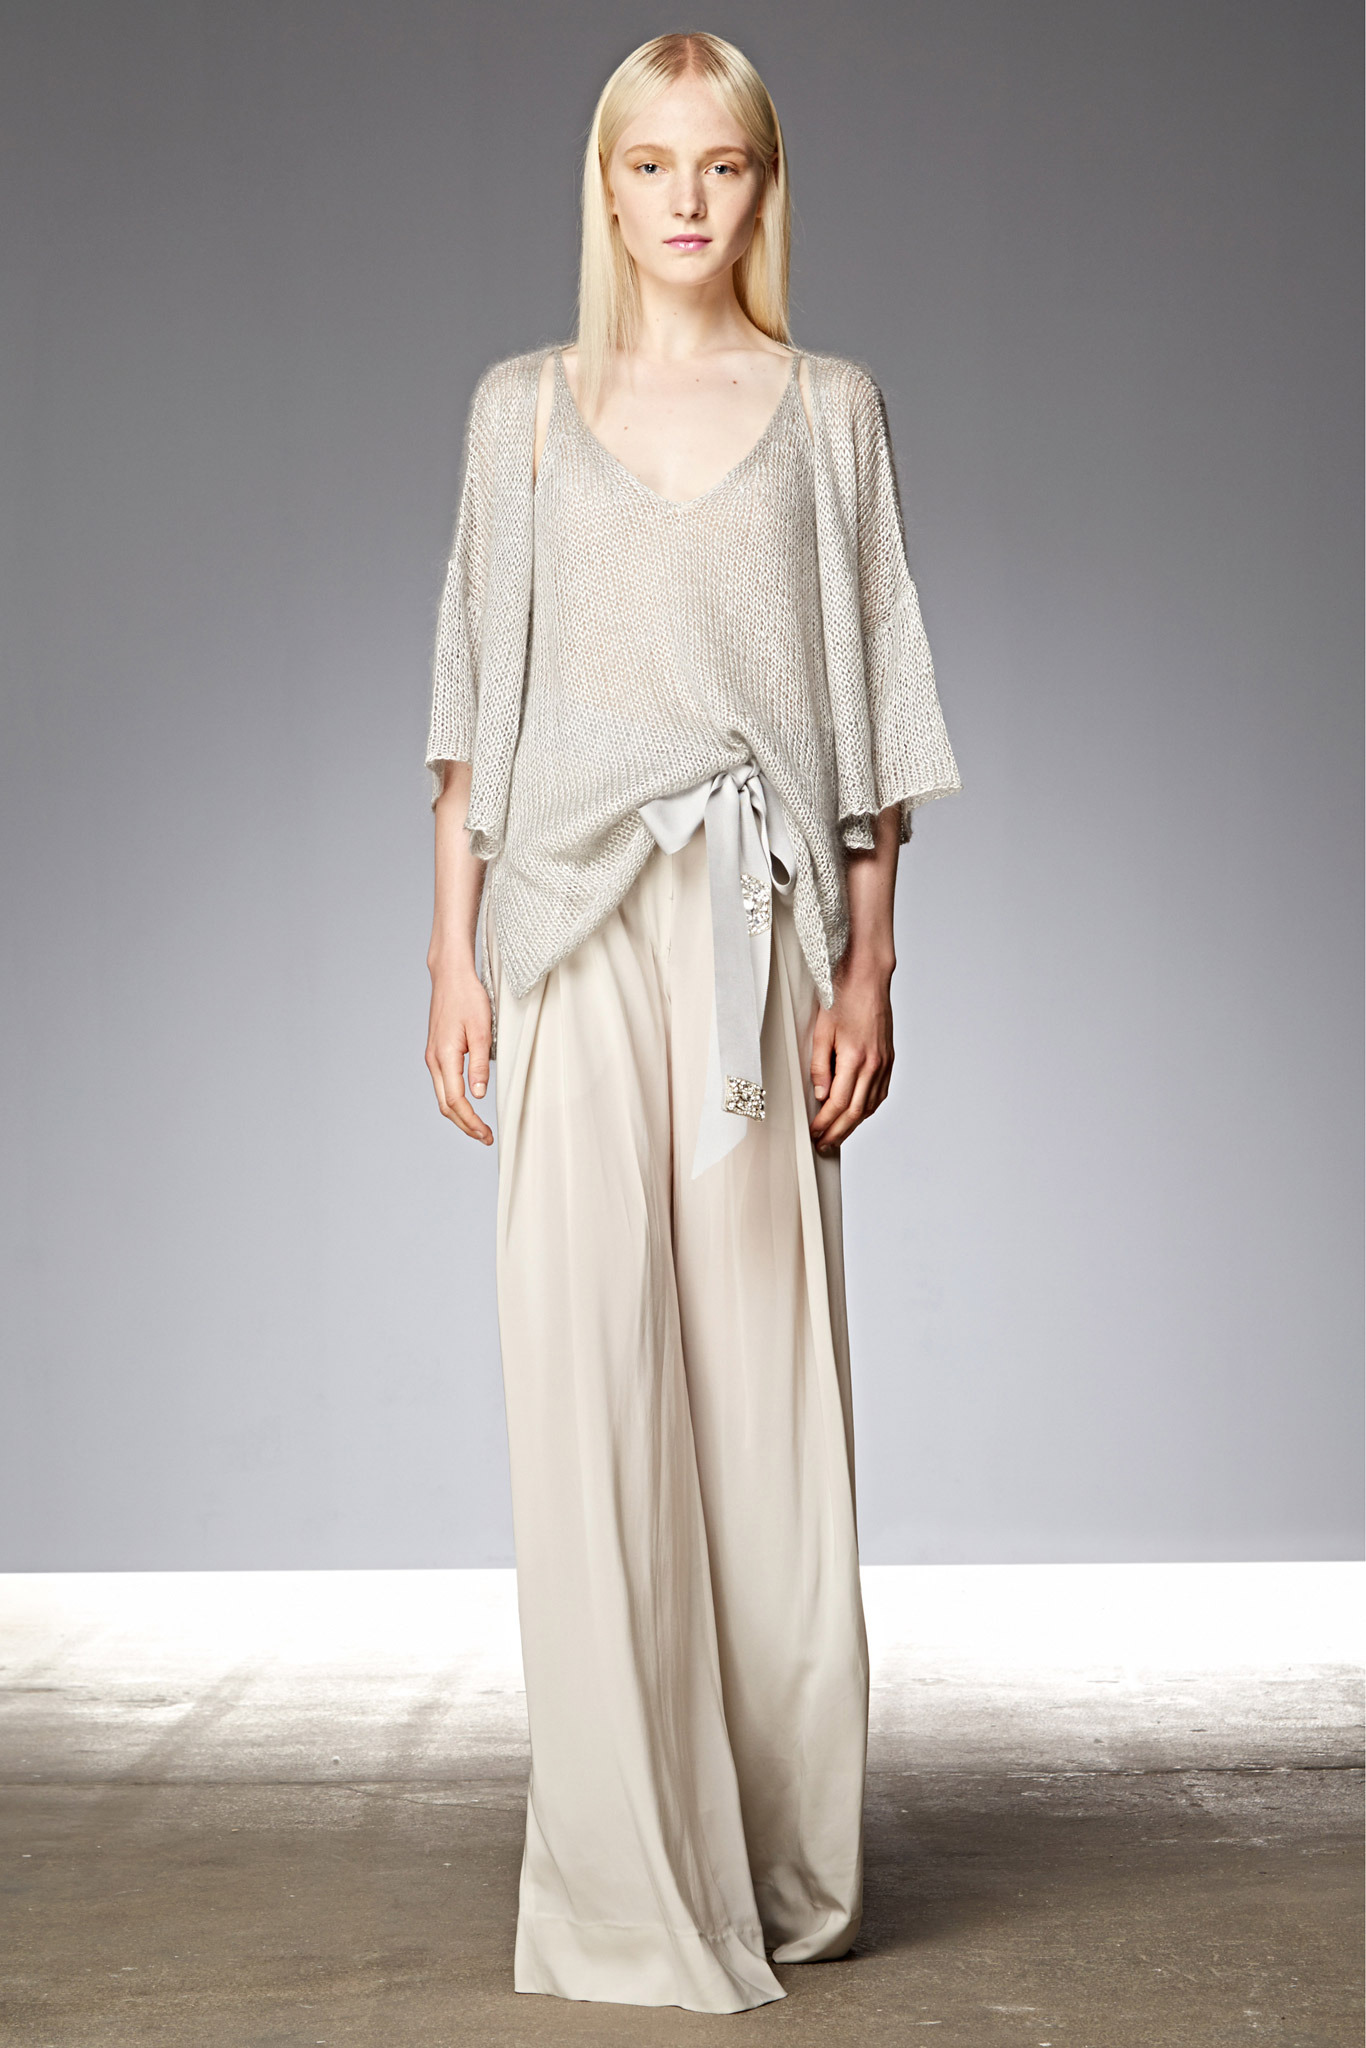 Maja Salamon | Donna Karan Resort 2015 (Photography: courtesy of Donna Karan via Style.com)